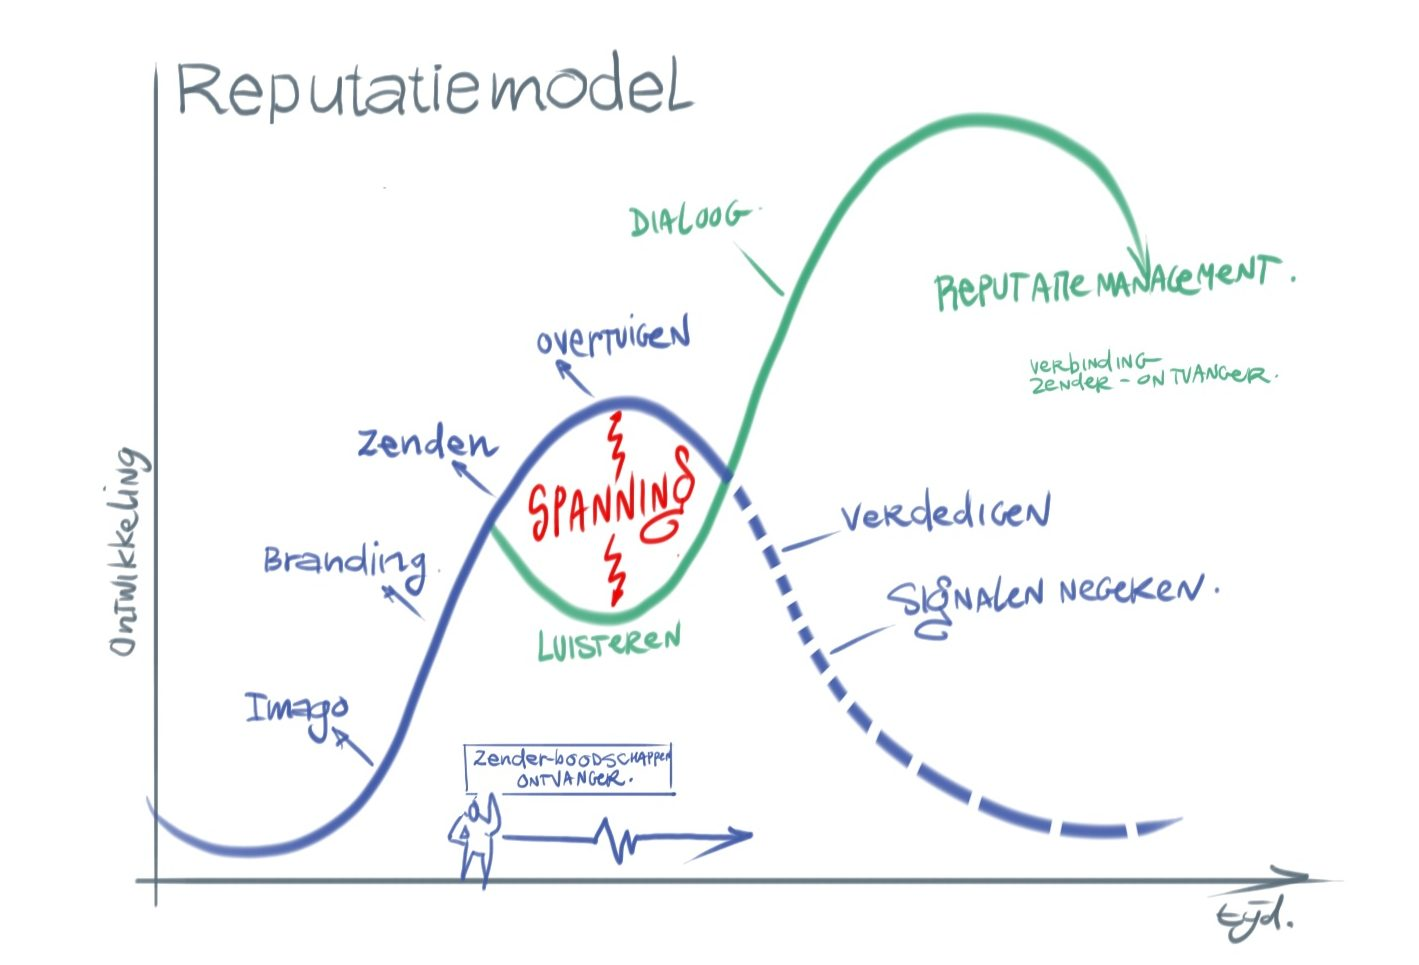 Reputatiemodel Bureau Hofkes Reputatiemanagement